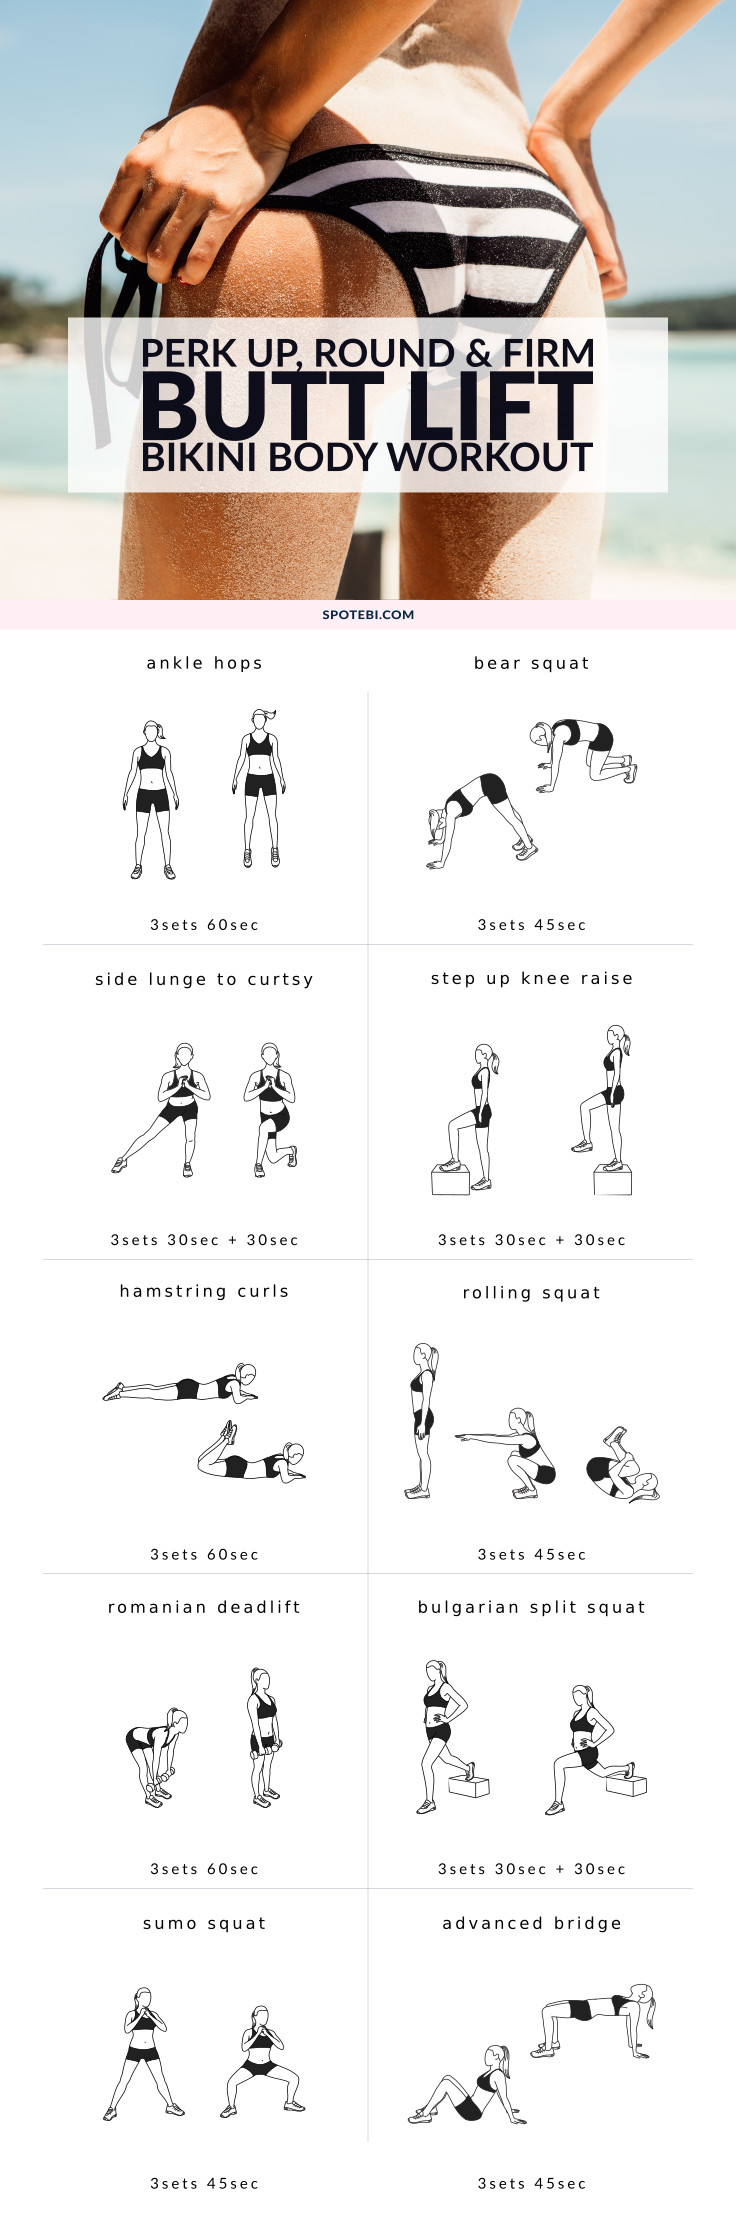 Perk up, round and firm your glutes with this butt lift workout for women. A 30 minute routine designed to target and activate your muscles and make your backside look good from every angle! https://www.spotebi.com/workout-routines/butt-lift-bikini-body-workout/